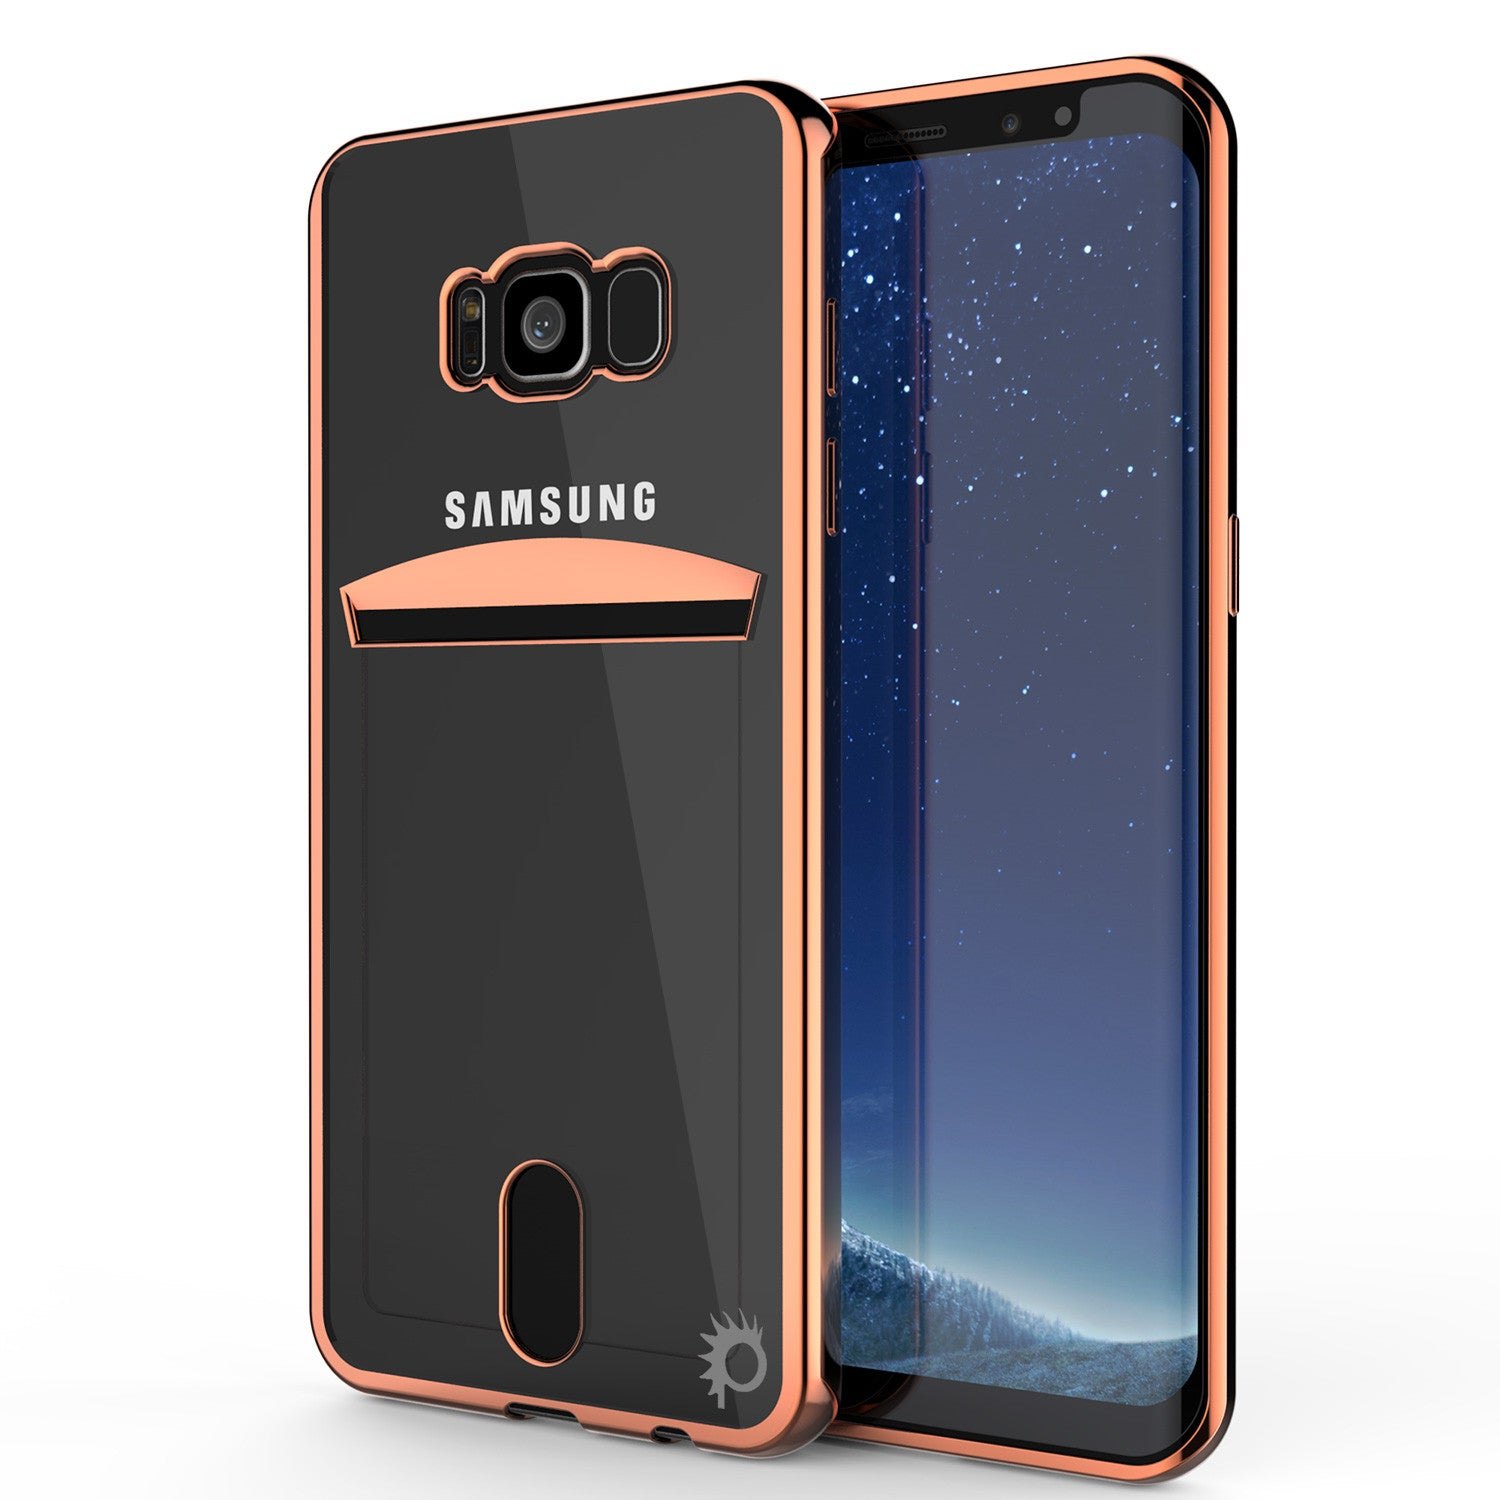 Galaxy S8 Plus Case, PUNKCASE® LUCID Rose Gold Series | Card Slot | SHIELD Screen Protector